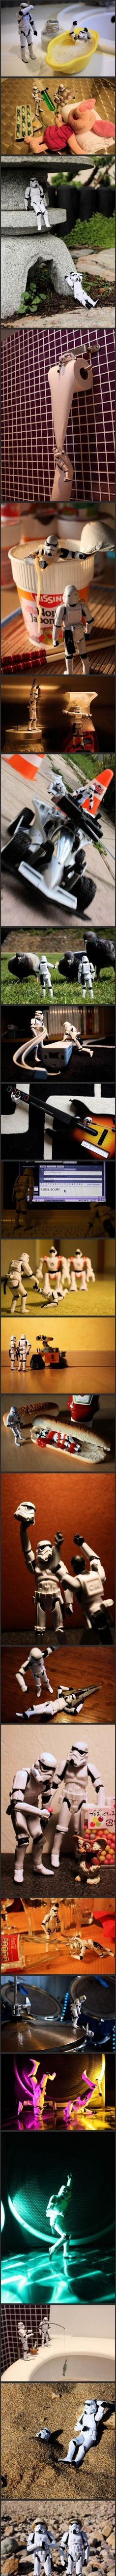 Storm trooper fun #geek